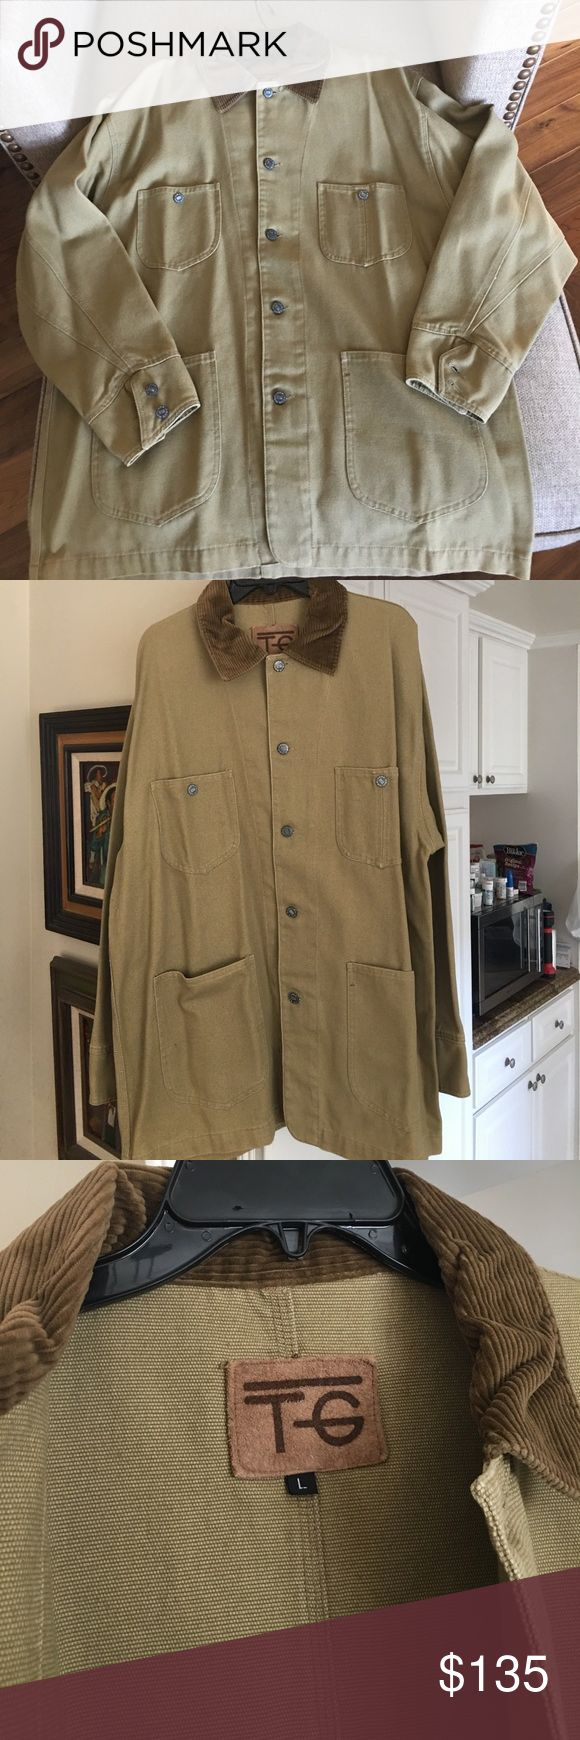 True Grit brand new men's canvas jacket True Grit brand new men's canvass lightweight jacket size L. Comes with original plastic bag. This is a heavy light jacket/shirt. True Grit Jackets & Coats Lightweight & Shirt Jackets